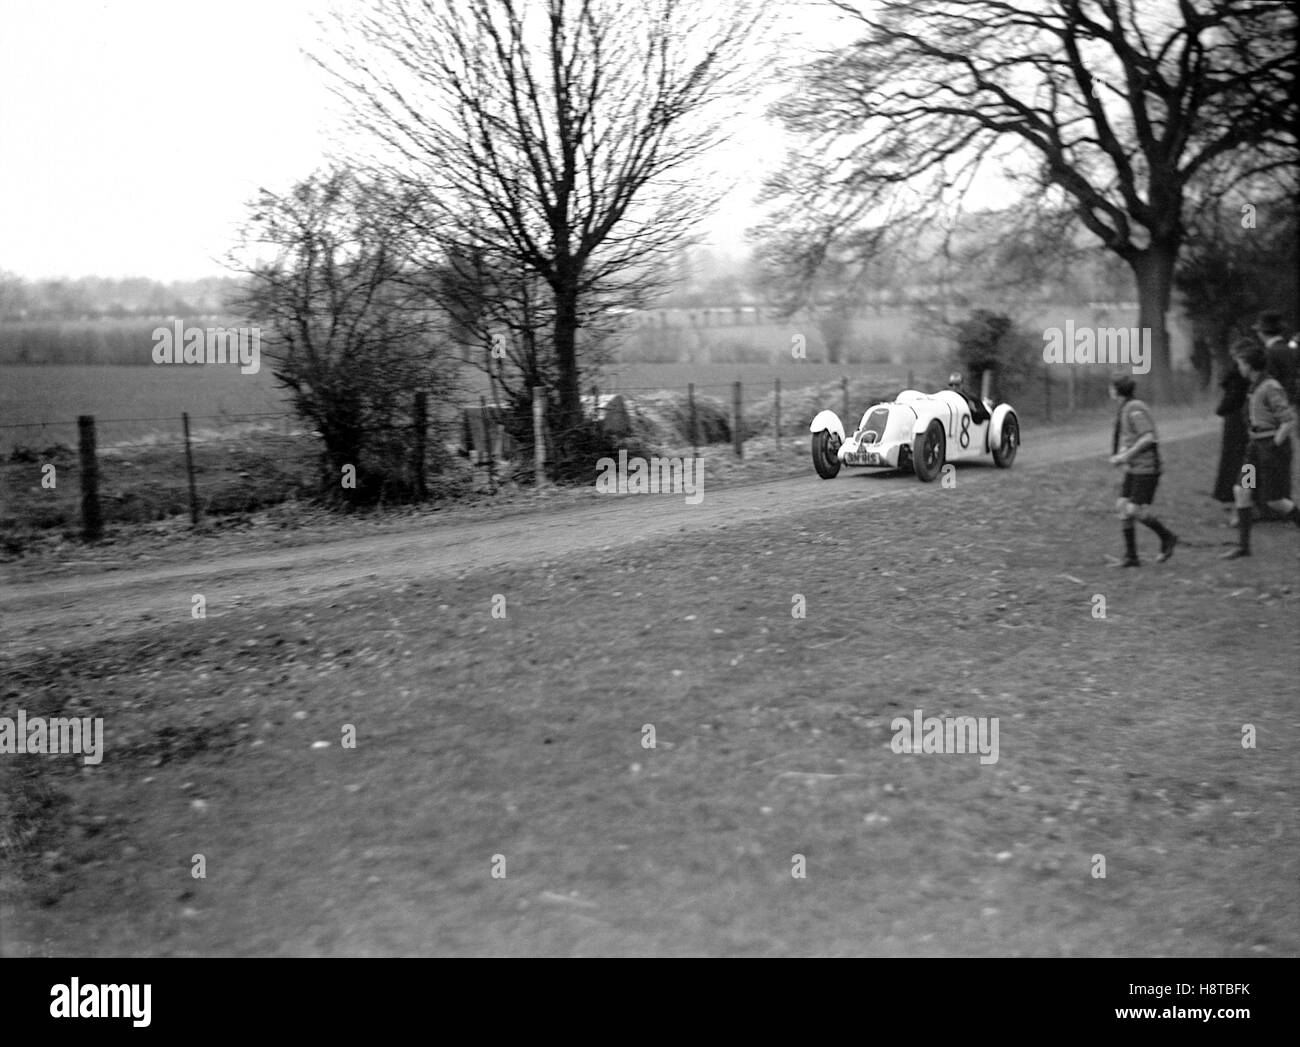 ALTA IN SPRINT OR RAC RALLY - Stock Image